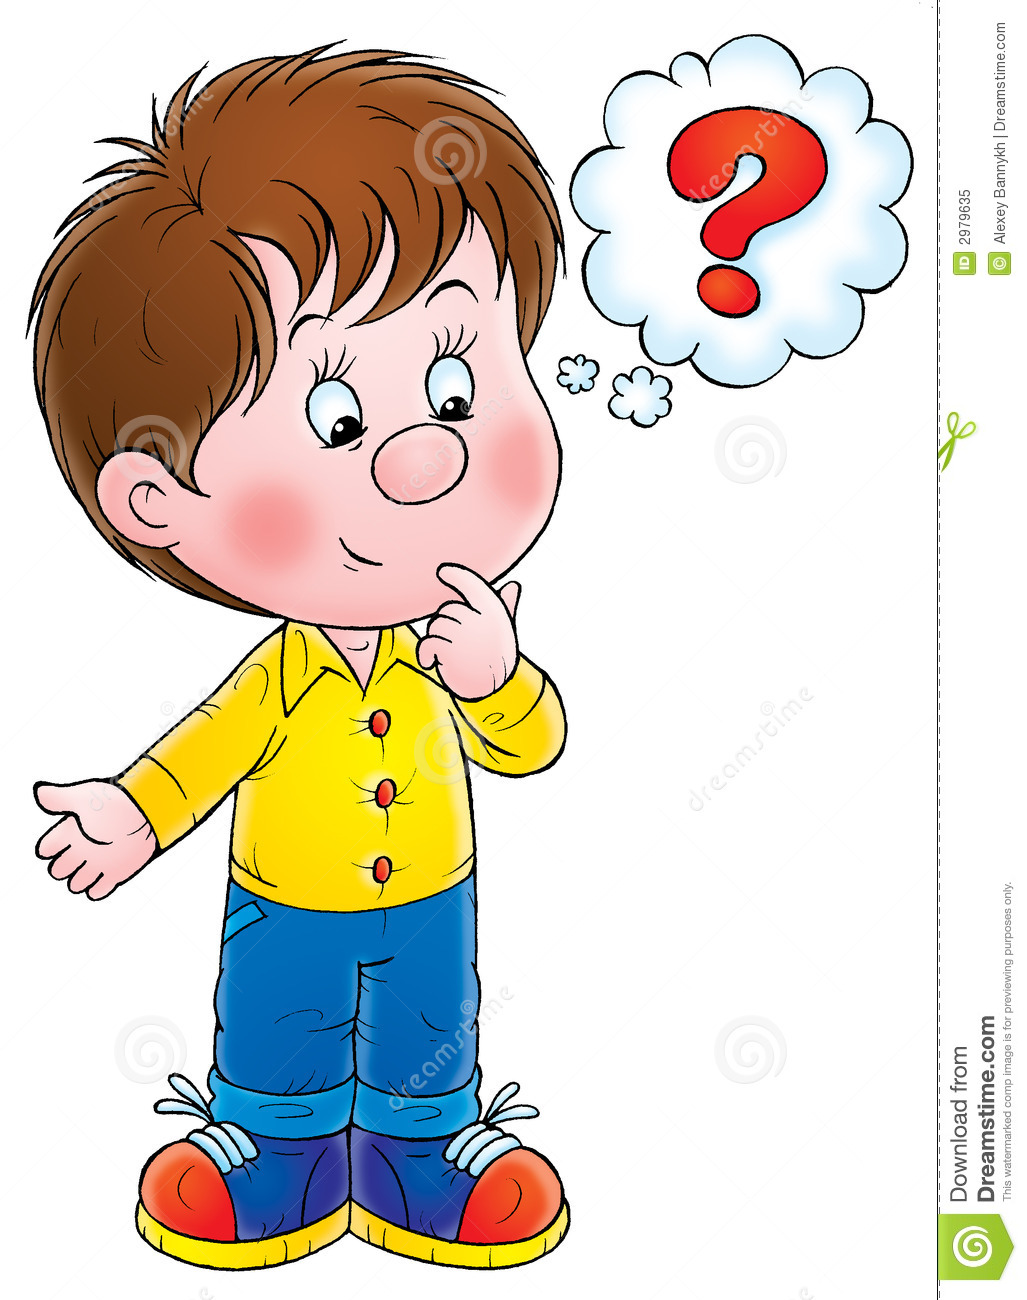 Reflection clipart kid question #12